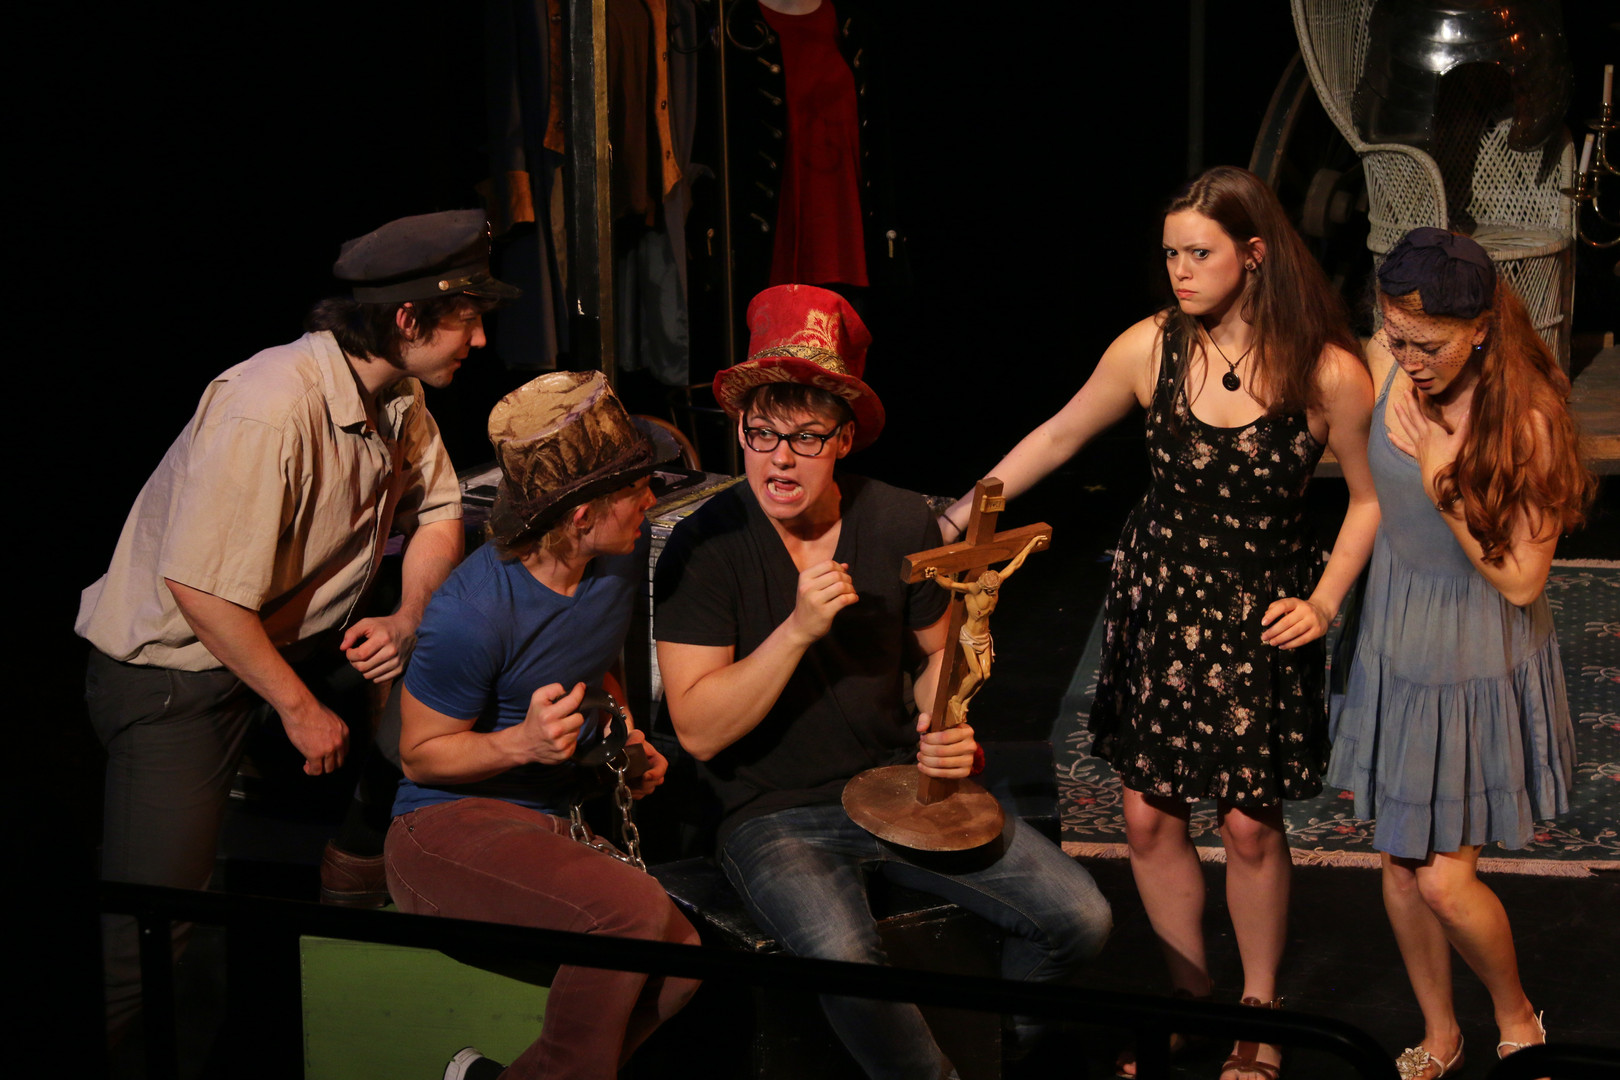 An Exorcisim in Comedy of Errors